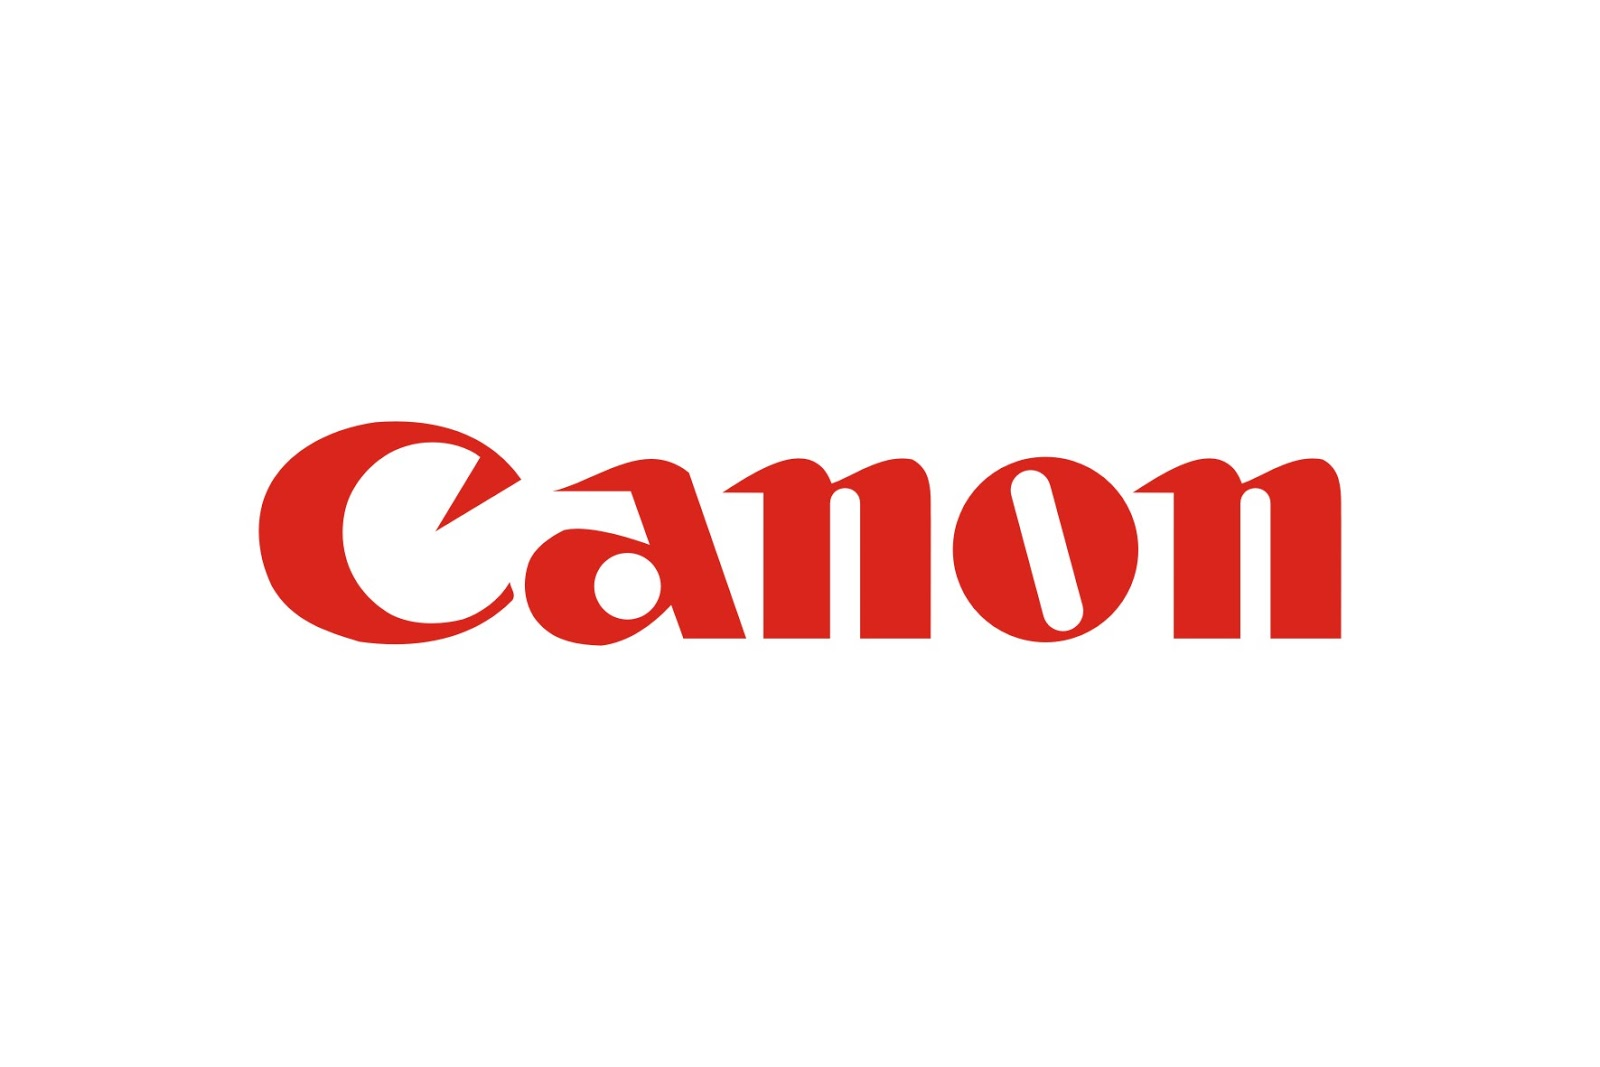 Canon Announces Development of New CMOS Sensor with High Dynamic Range and Ability to Capture Images Under Harsh Conditions